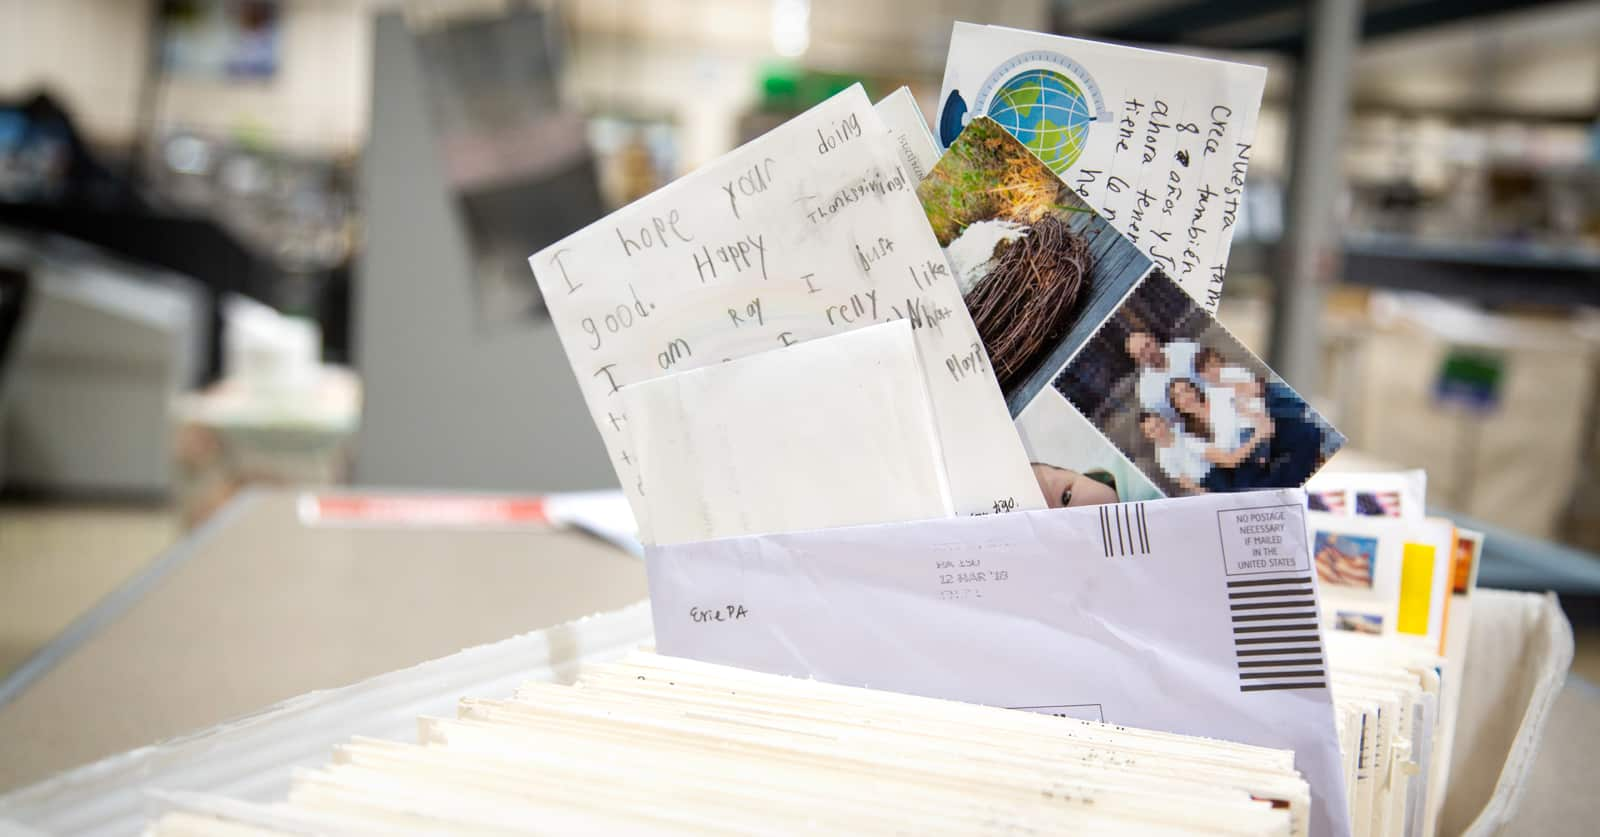 How Long Does It Take for My Letters to Be Delivered? A file folder full of letters and pictures.